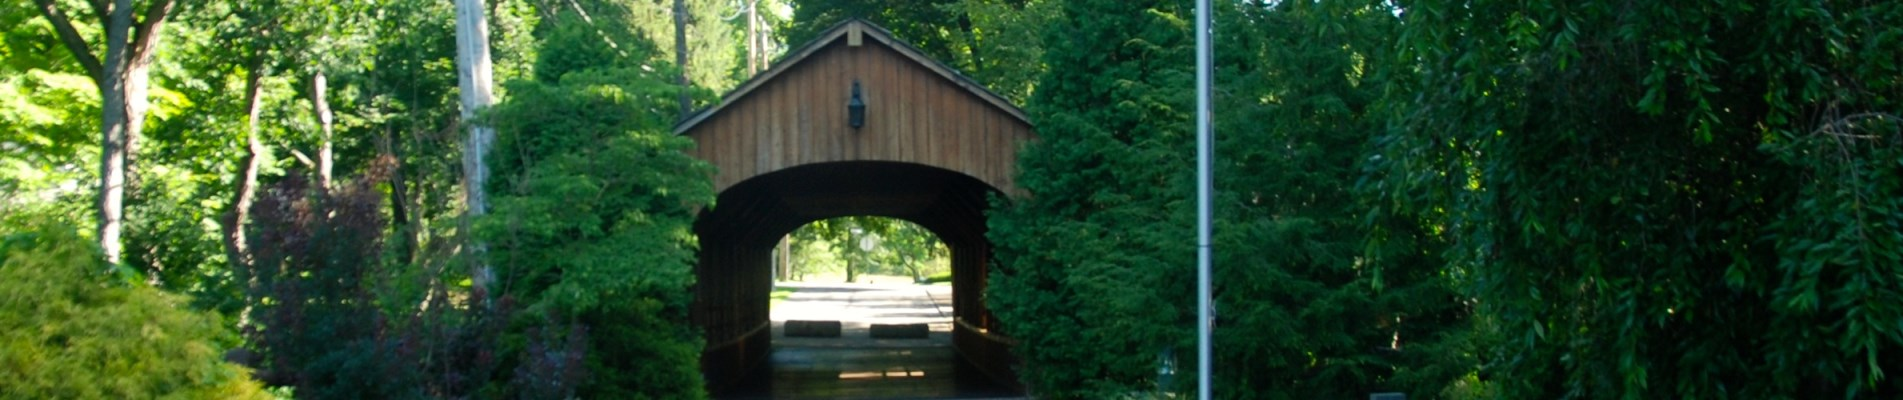 Banner photo of Olmsted Falls bridge